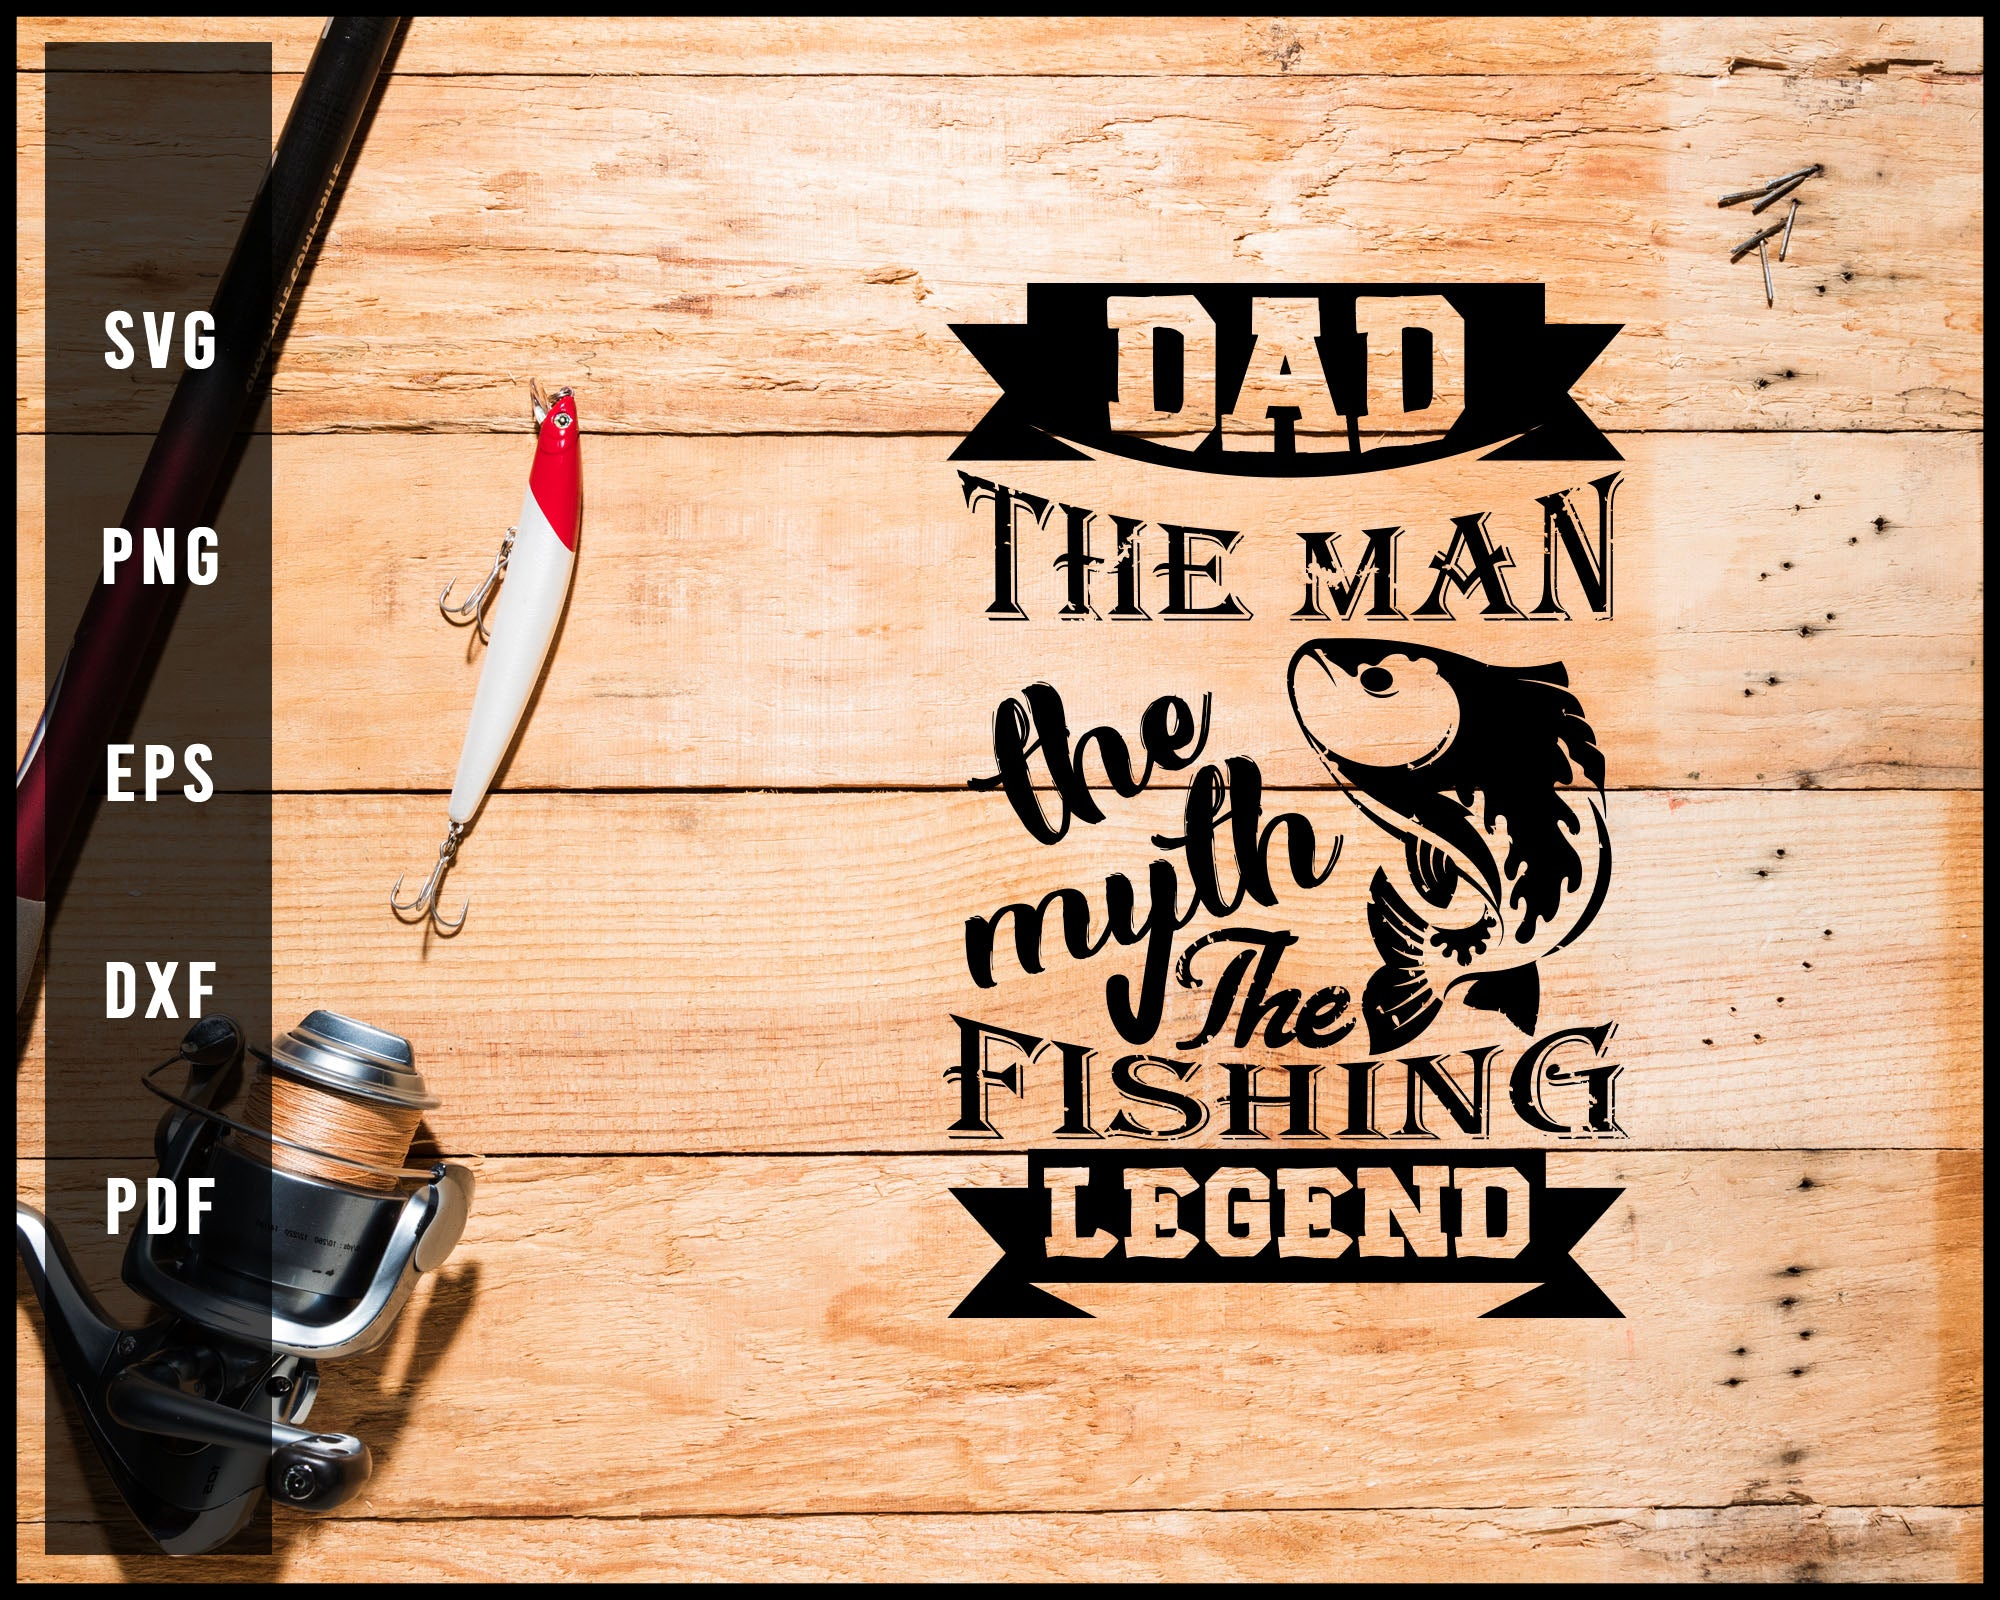 Dad The Man The Myth The Fishing Legend svg png Silhouette Designs For Cricut And Printable Files